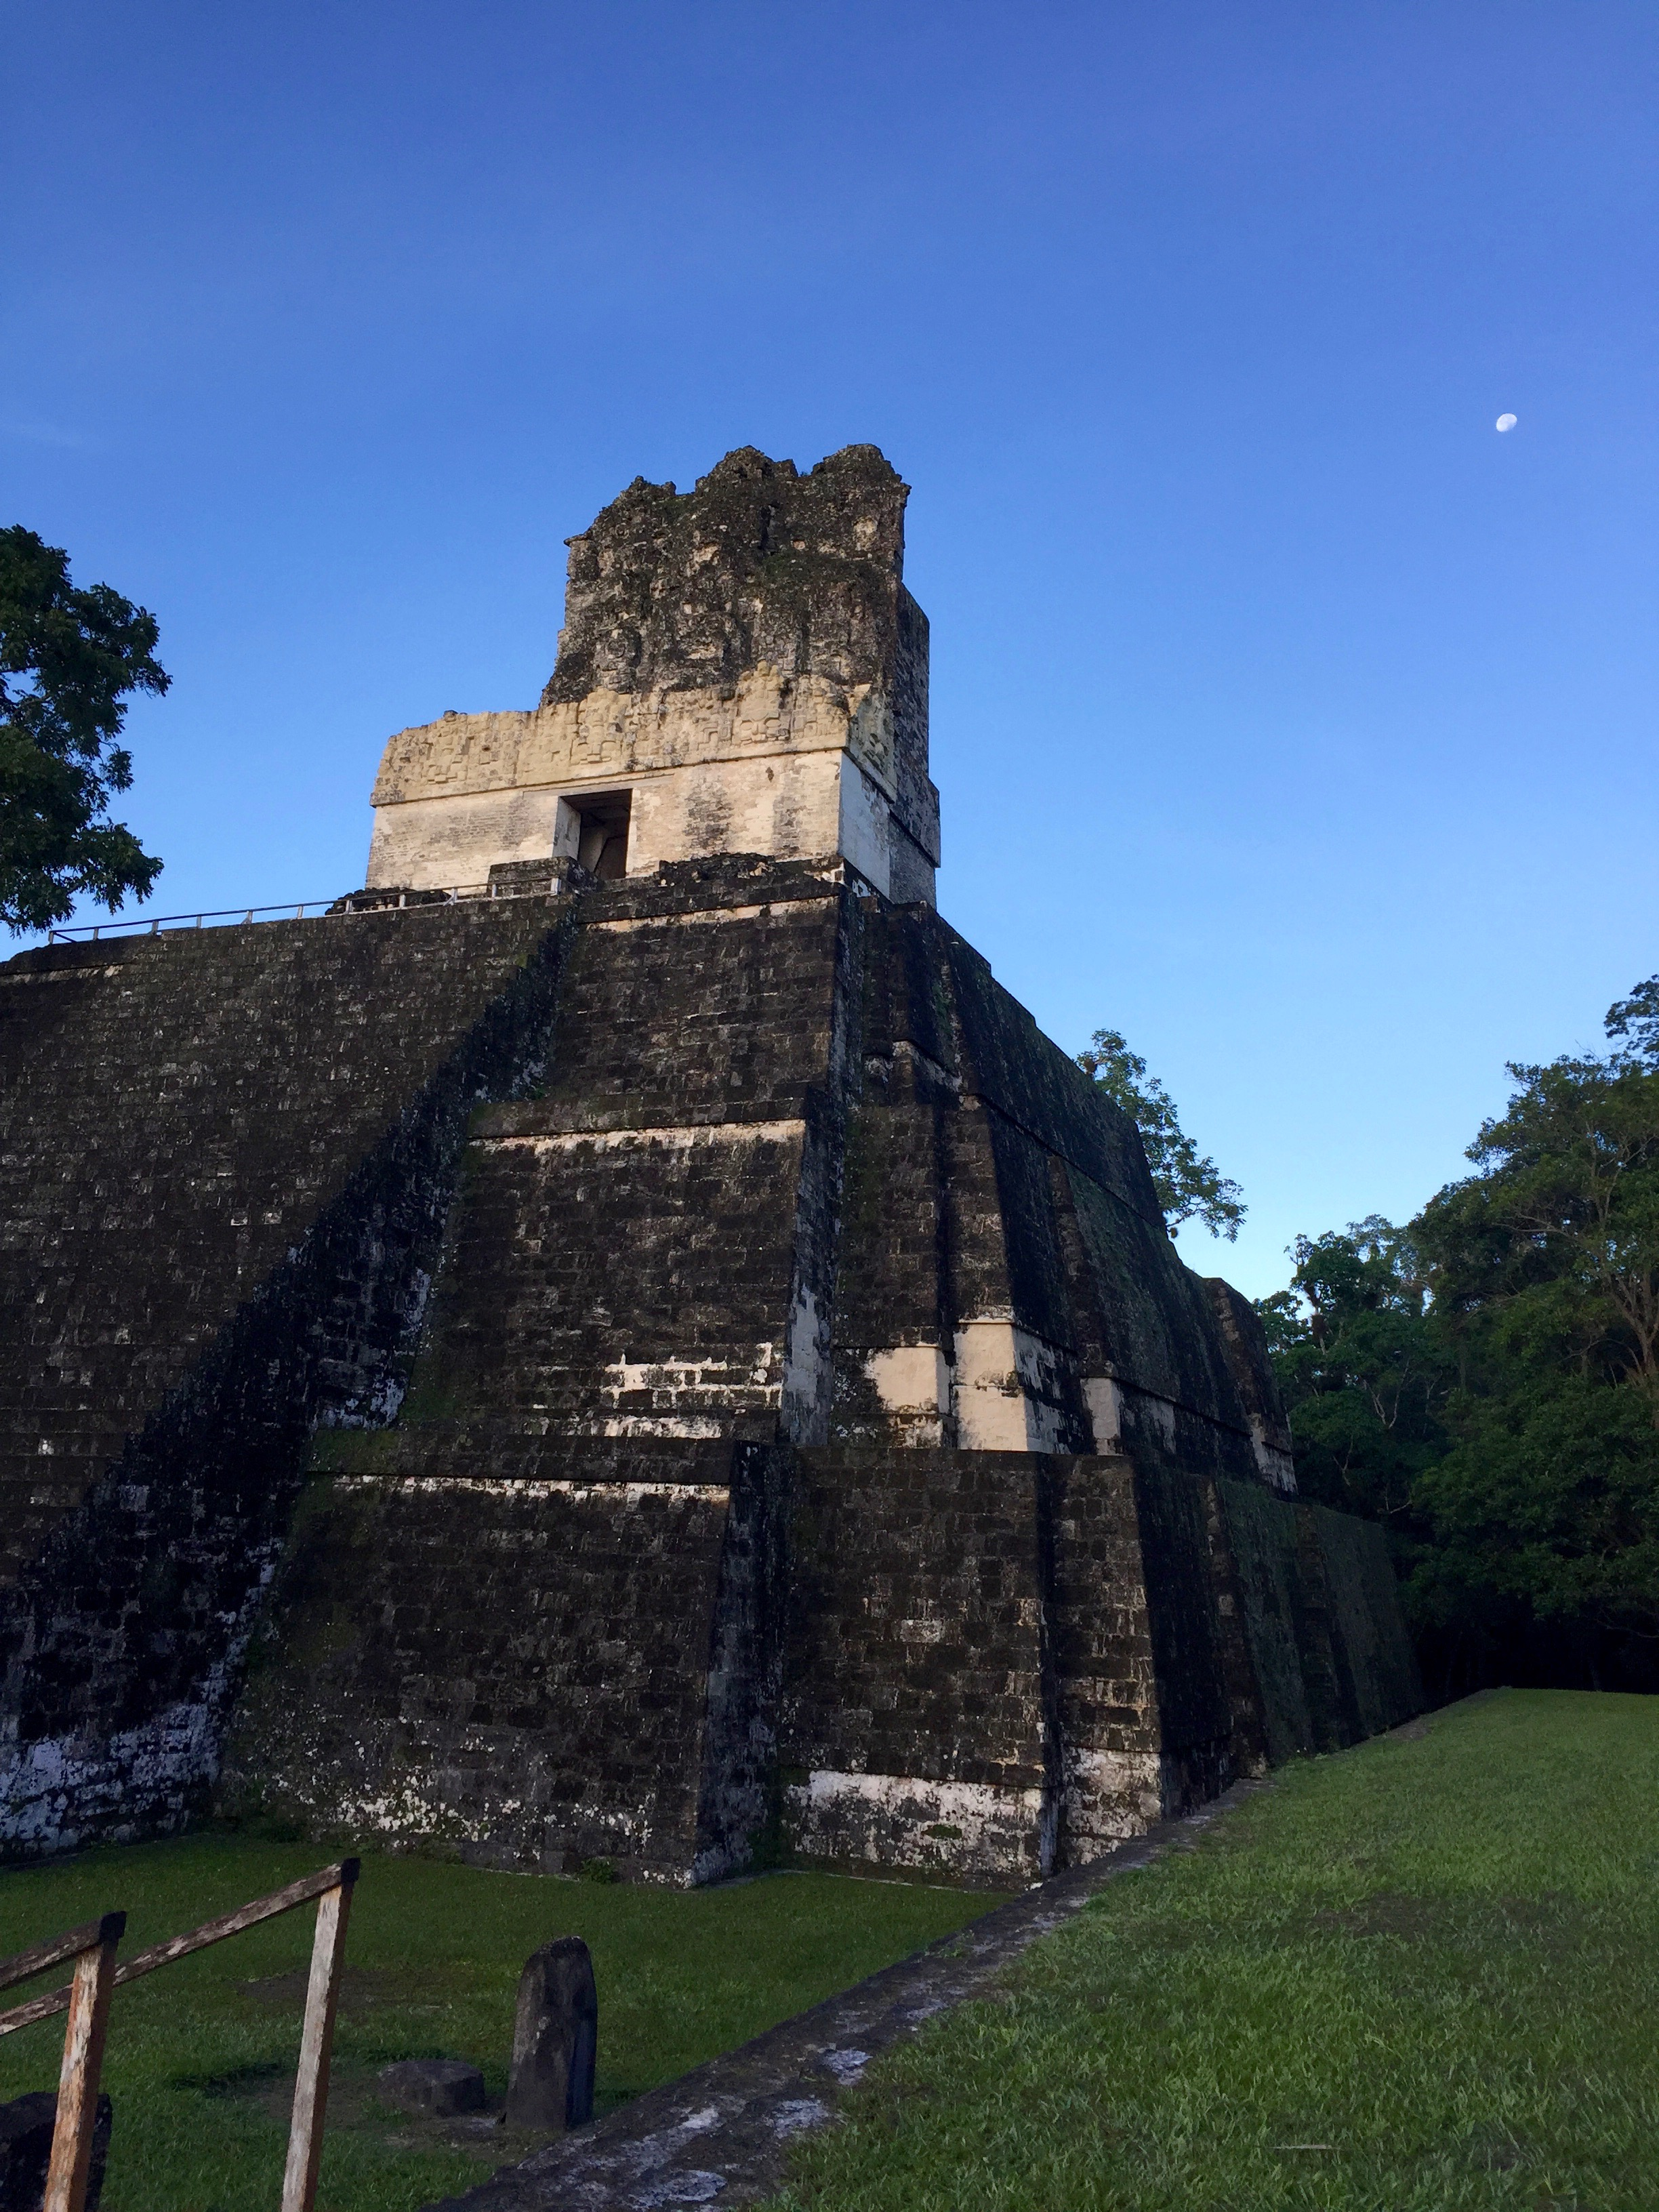 A view of one of the Tikal temples in daylight. The advantage of arriving in the park at sunrise is that the area is practically empty for the first few hours of daylight, so it's easy to imagine what it was like hundreds of years ago.